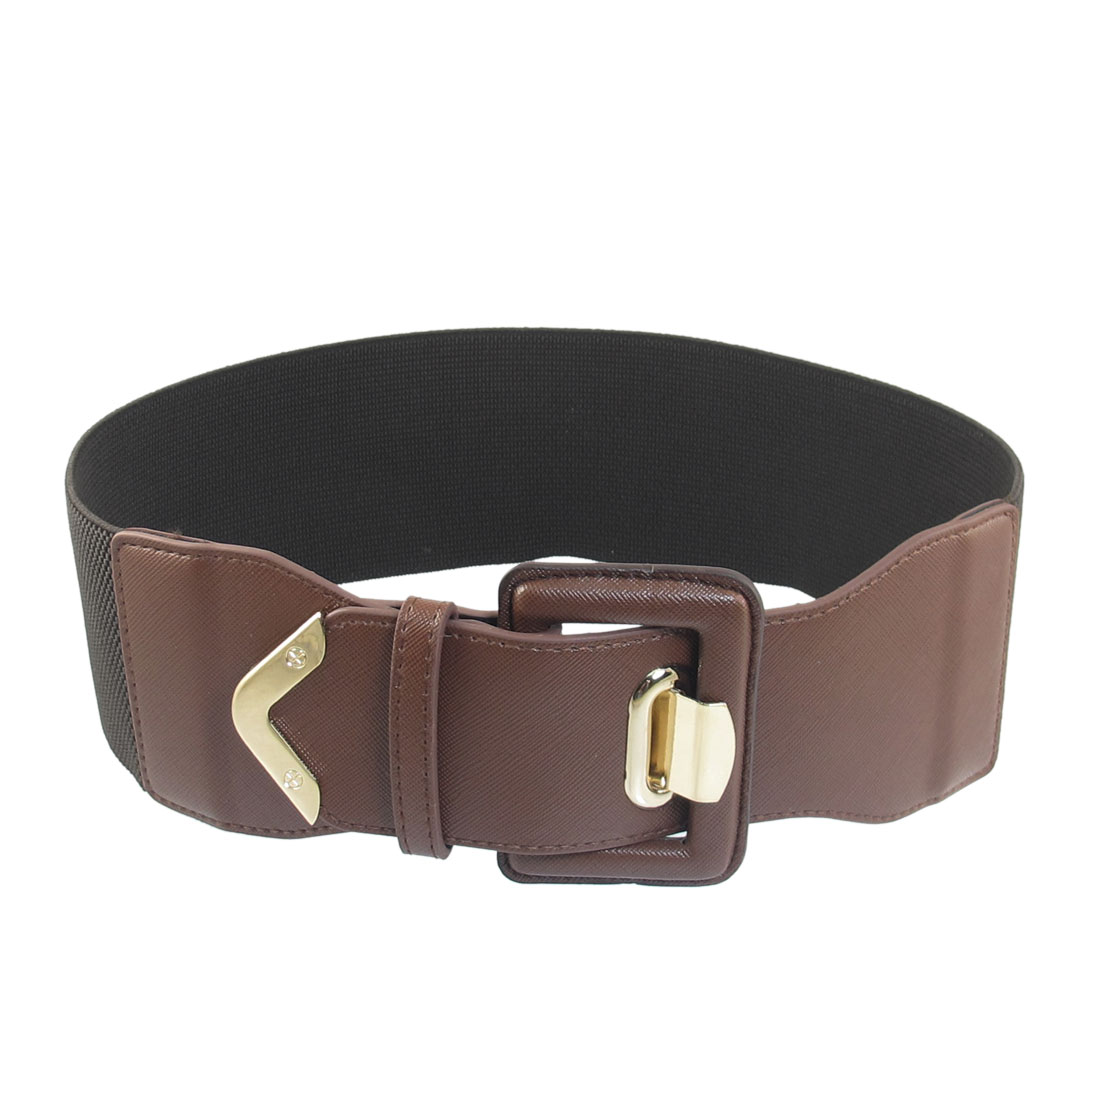 Gold Tone Single Prong Buckle Coffee Color Stretchy Cinch Belt Band for Women